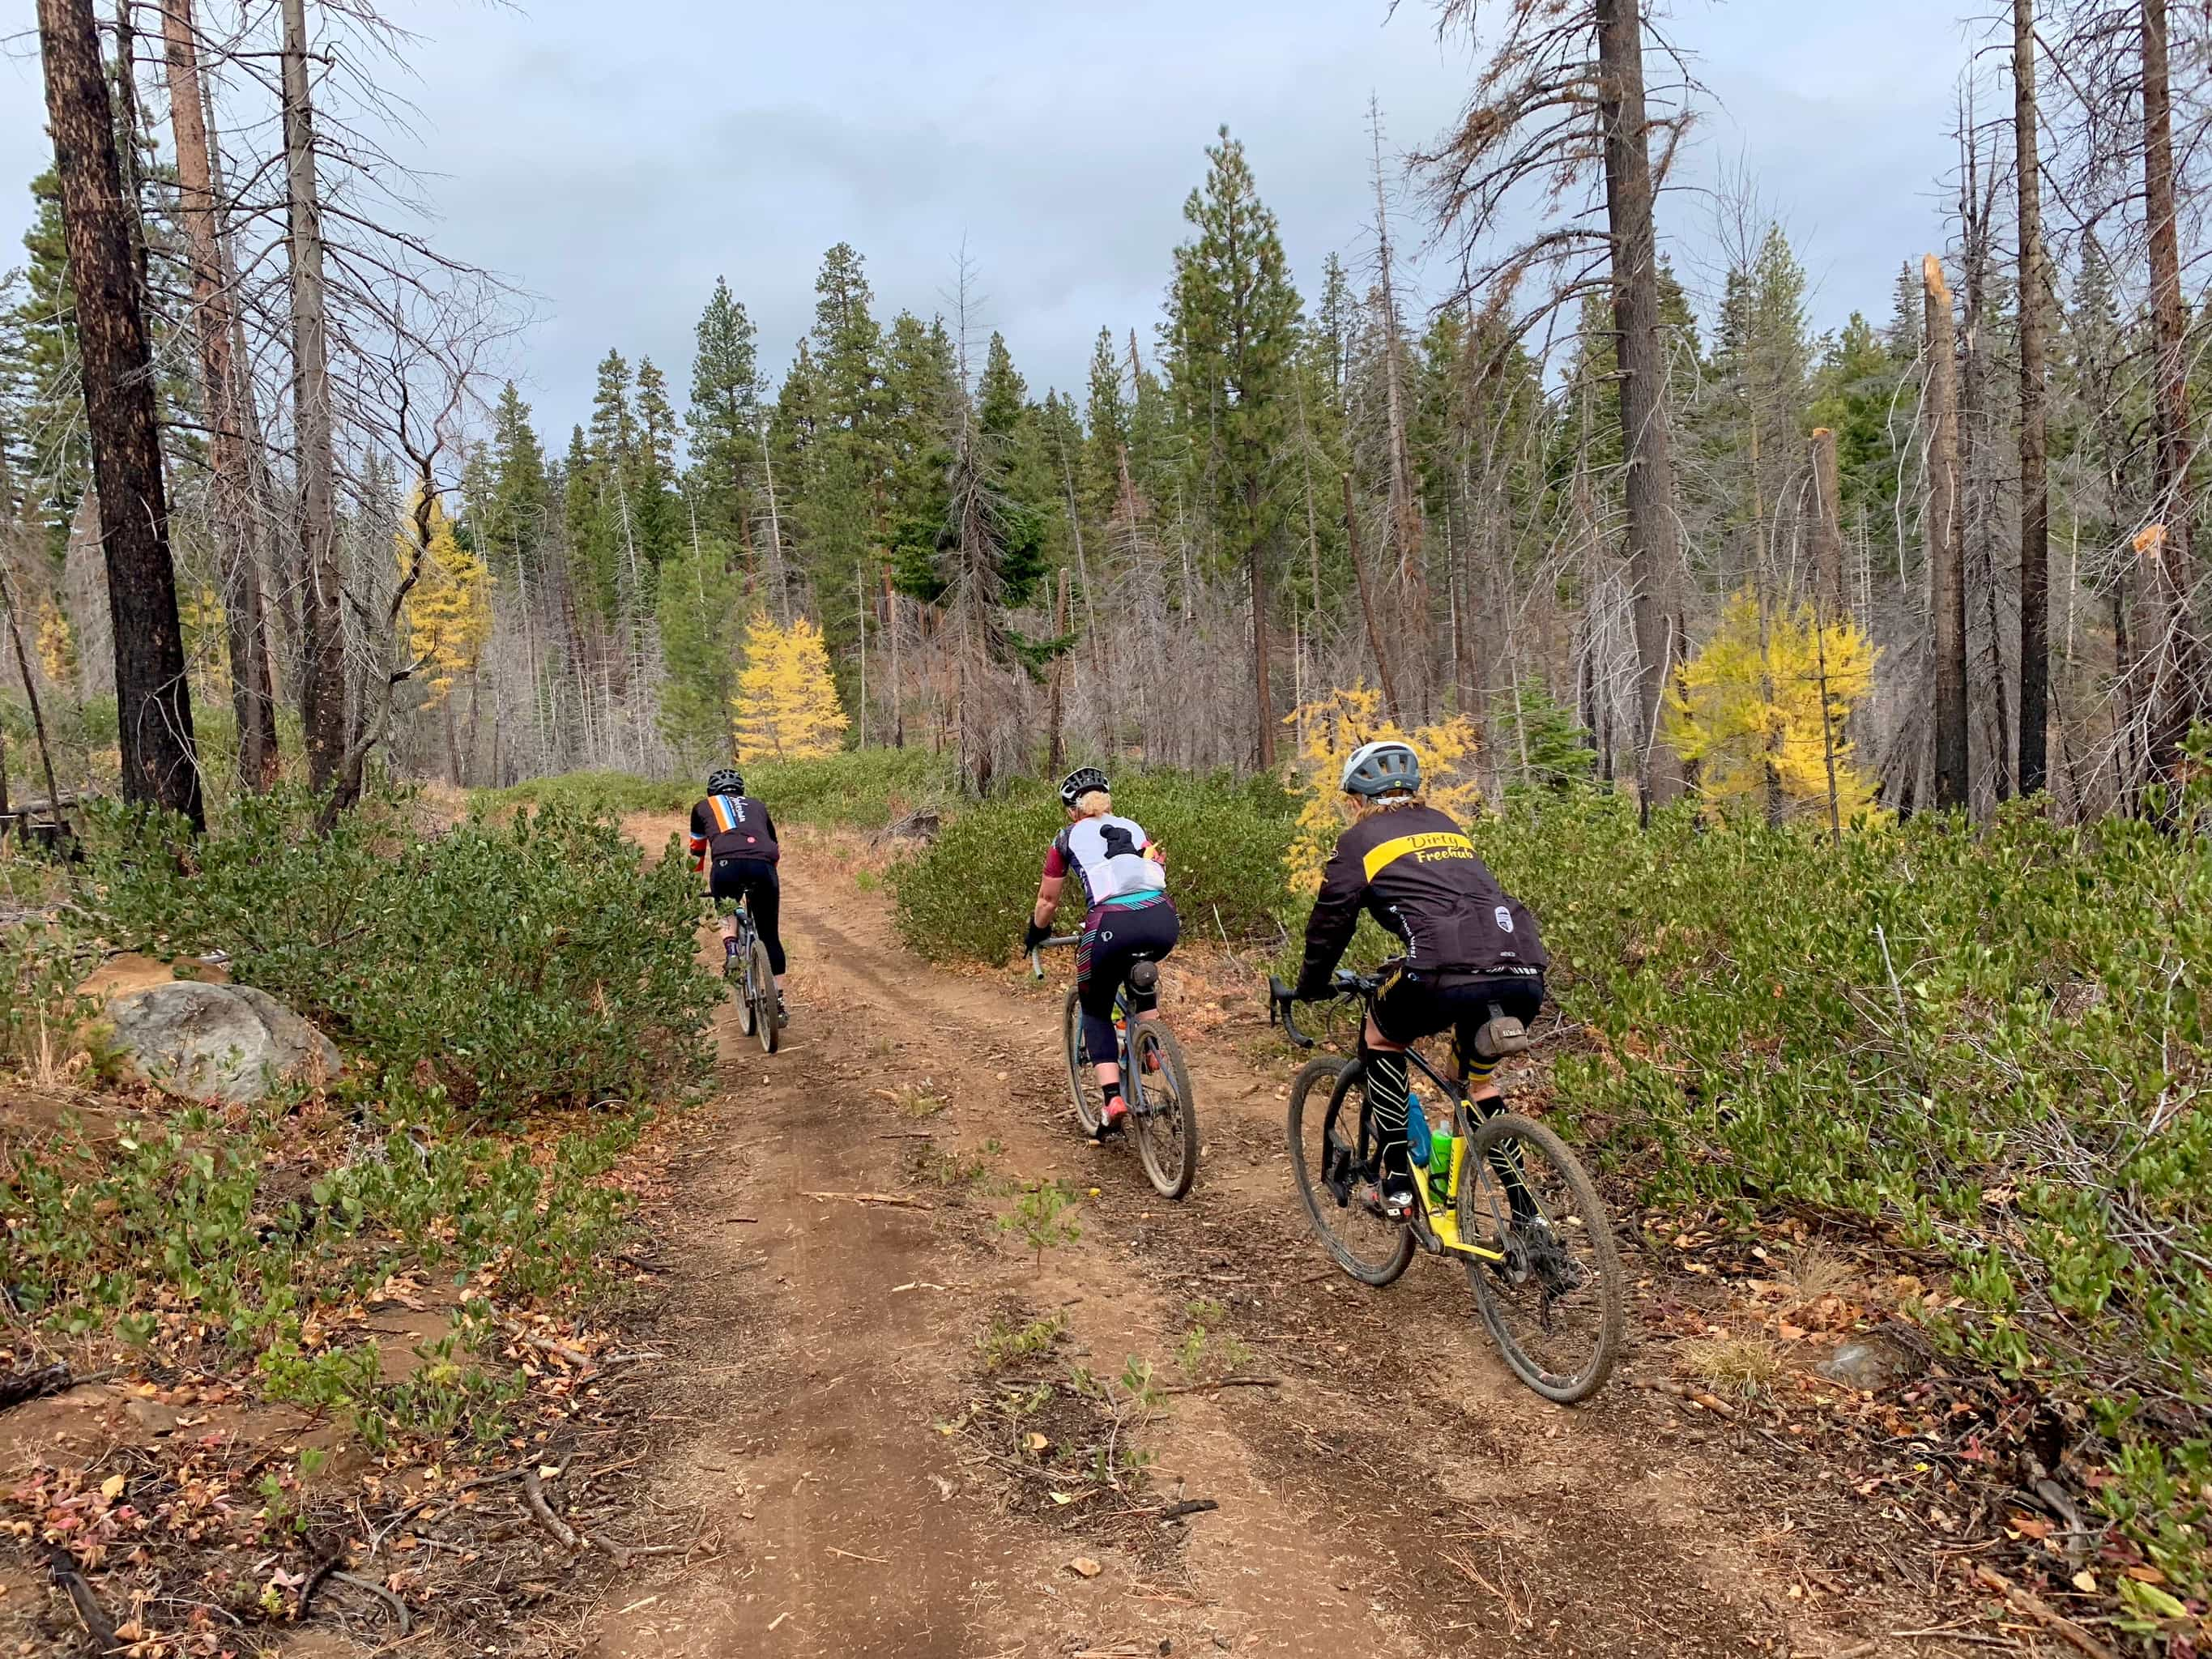 Three gravel bike riders on primitive forest roads.